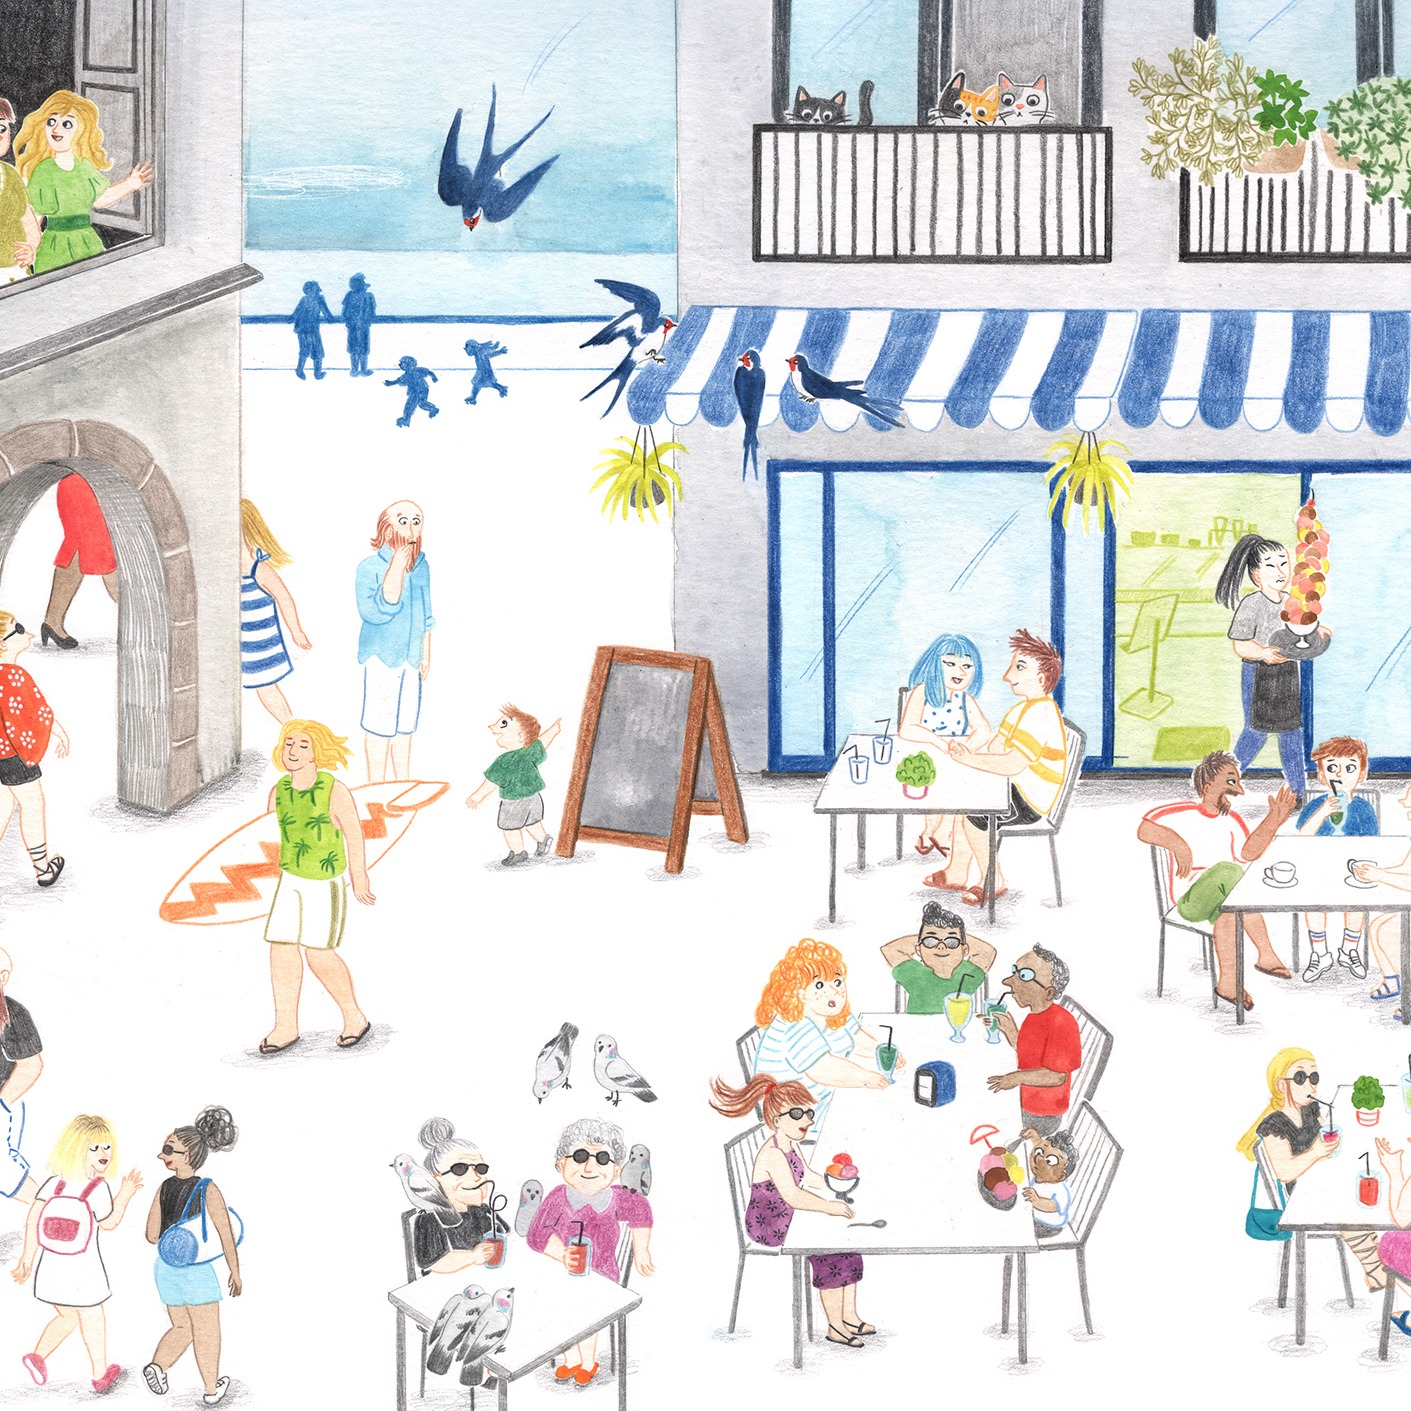 Ilustración de verano, ilustración veraniega, summer illustration, surf illustration, ice-cream, helados, tourists, coffee shop, cafetería, heladería, Mar Villar,